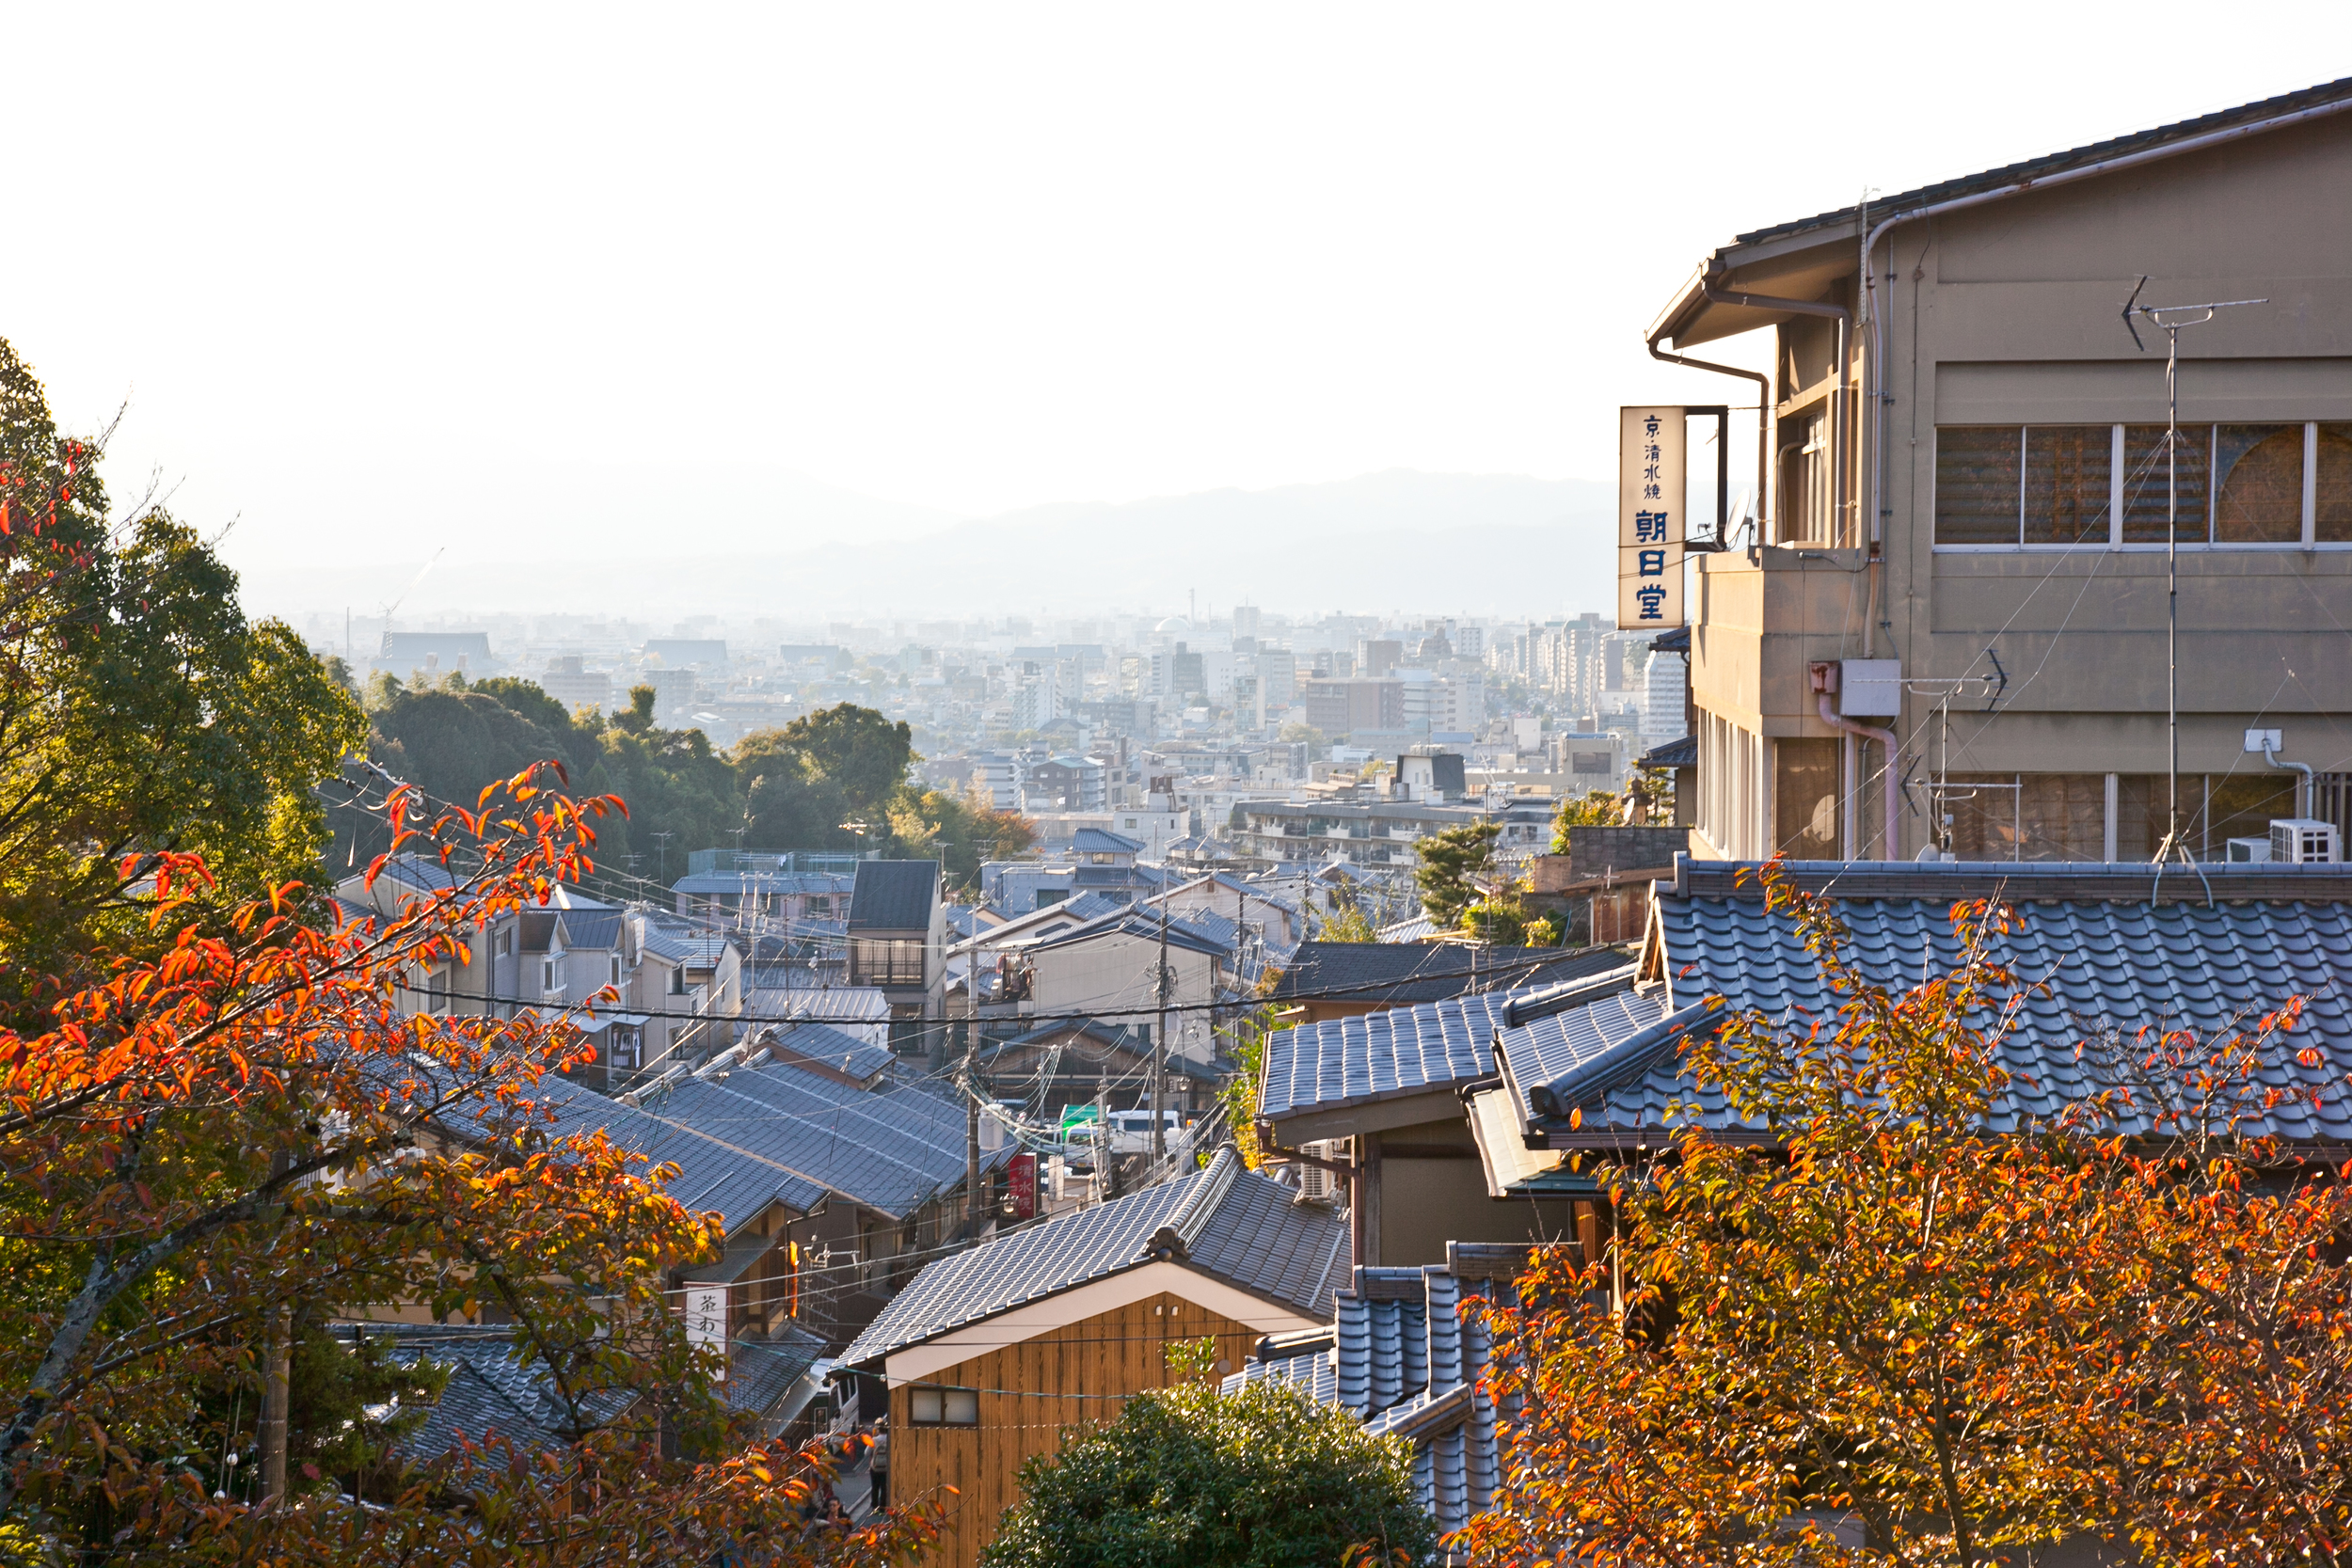 The UNESCO World Heritage site offers sweeping views of Kyoto